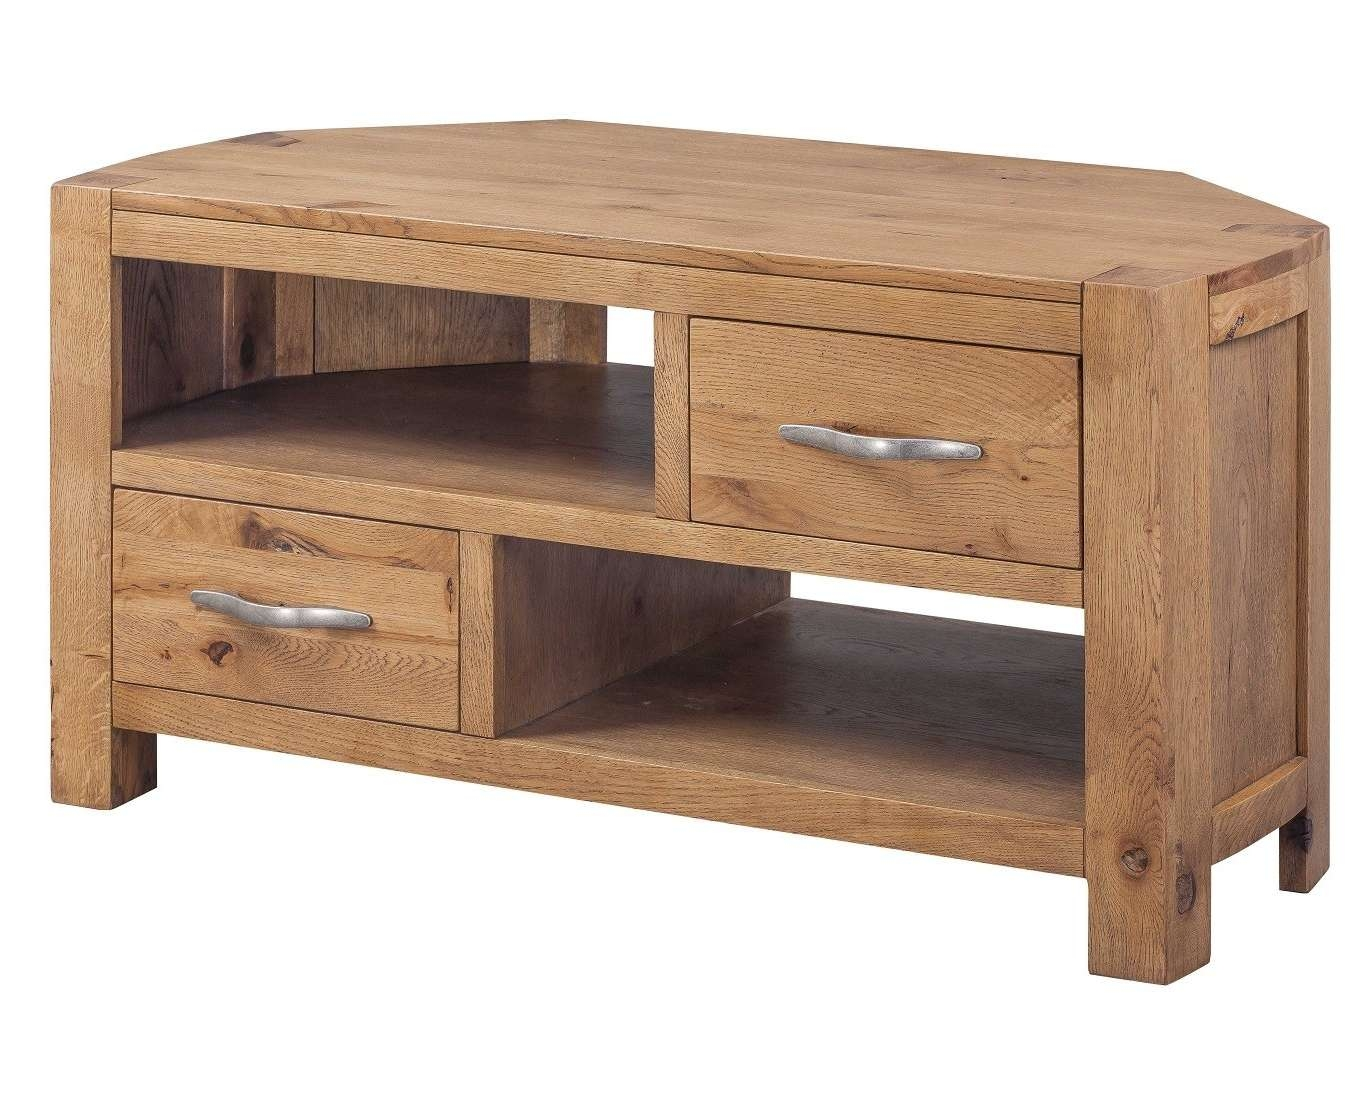 Como Rustic Oak Corner Tv Unit | Oak Furniture Uk Throughout Rustic Corner Tv Cabinets (View 4 of 20)